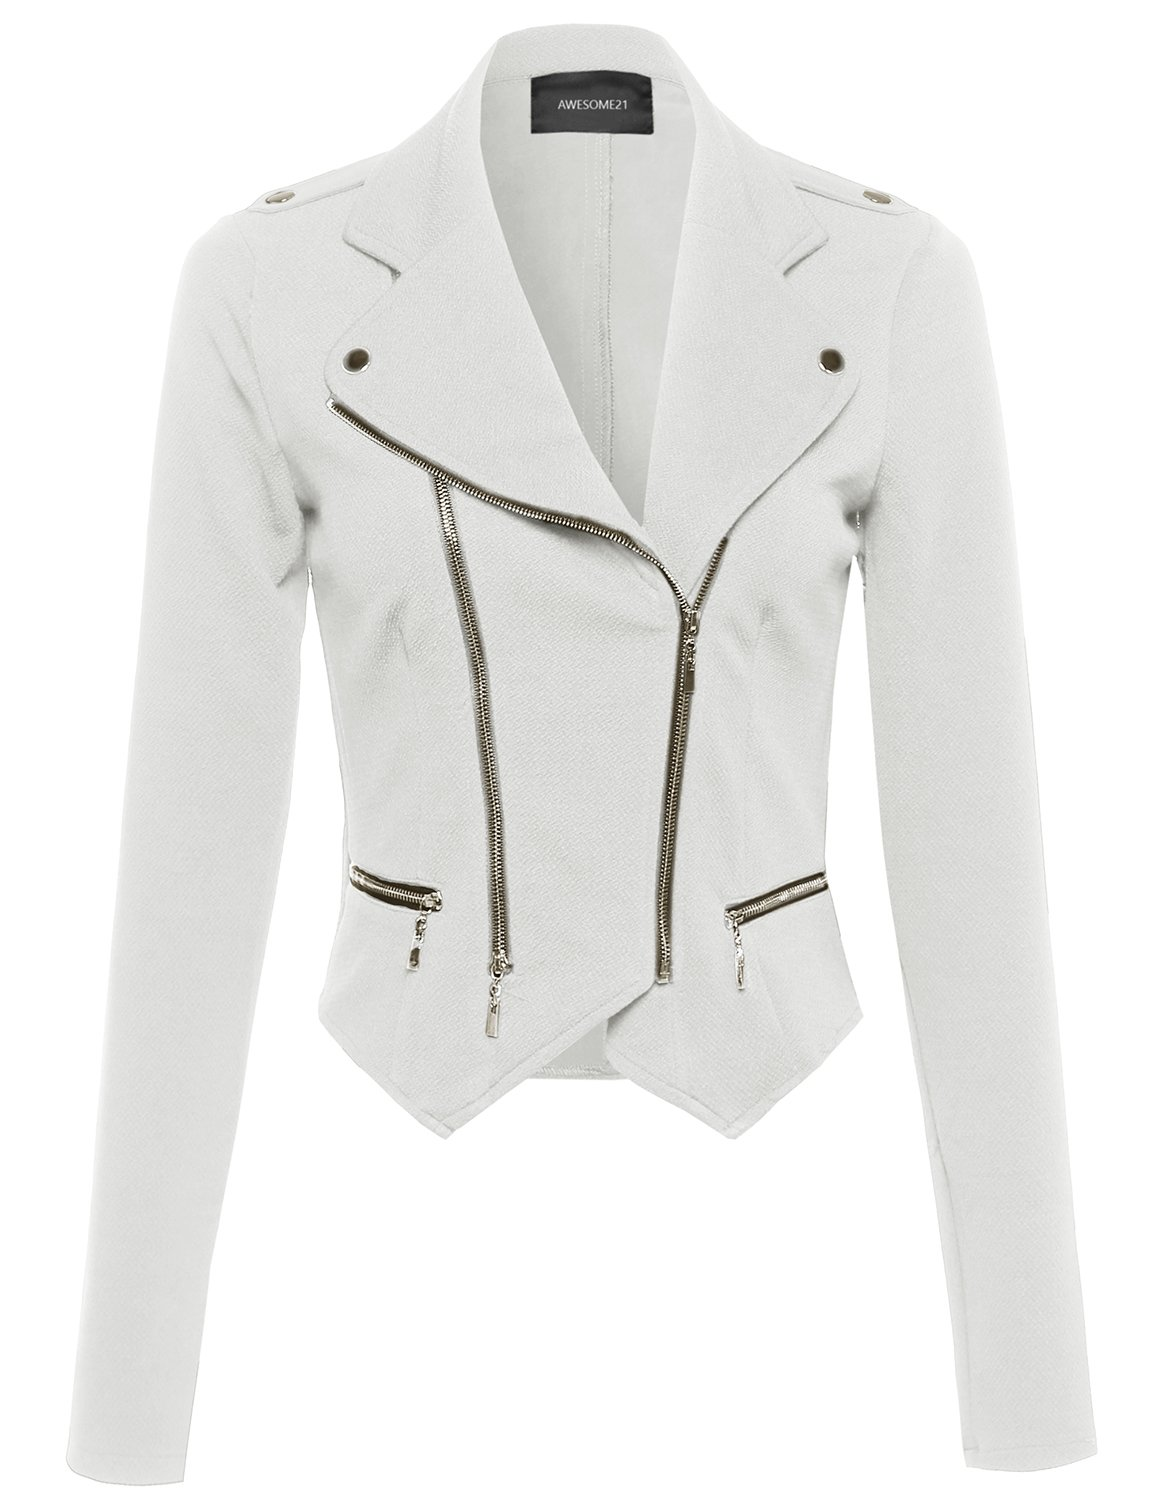 Awesome21 Long Sleeve Double Zip Moto Jacket Offwhite Size S